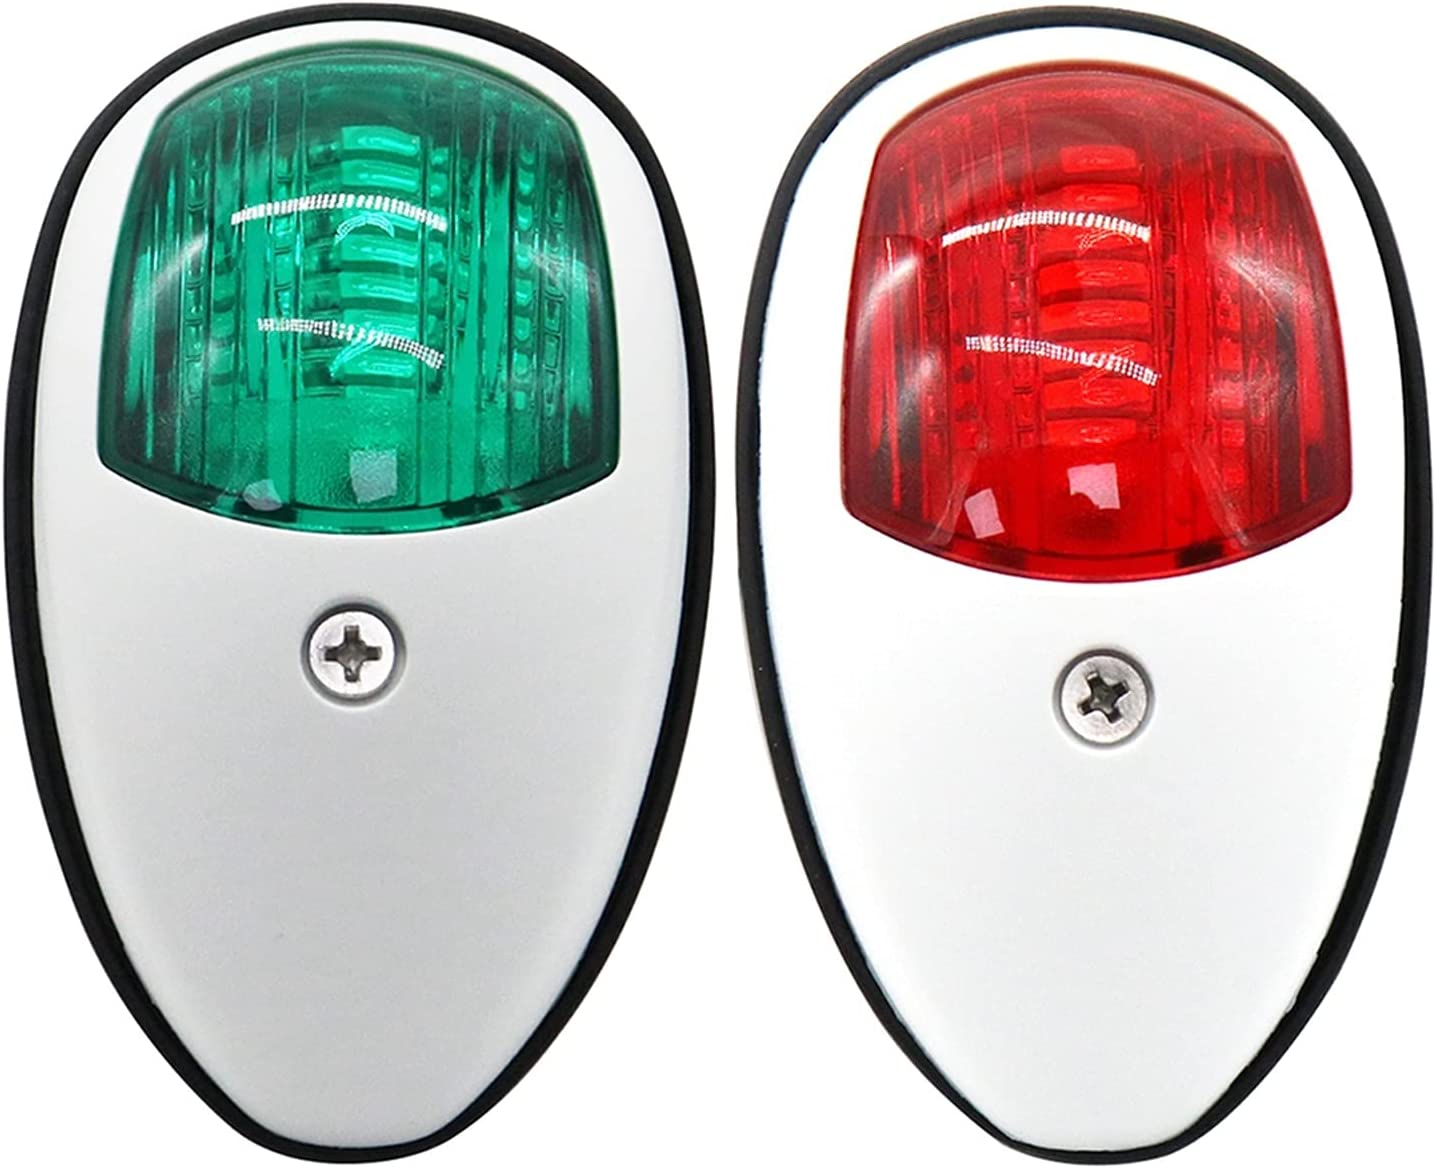 guizhoujiufu 2021 Navigation Light Electrical Signal Warnin Equipment Spring new work one after another